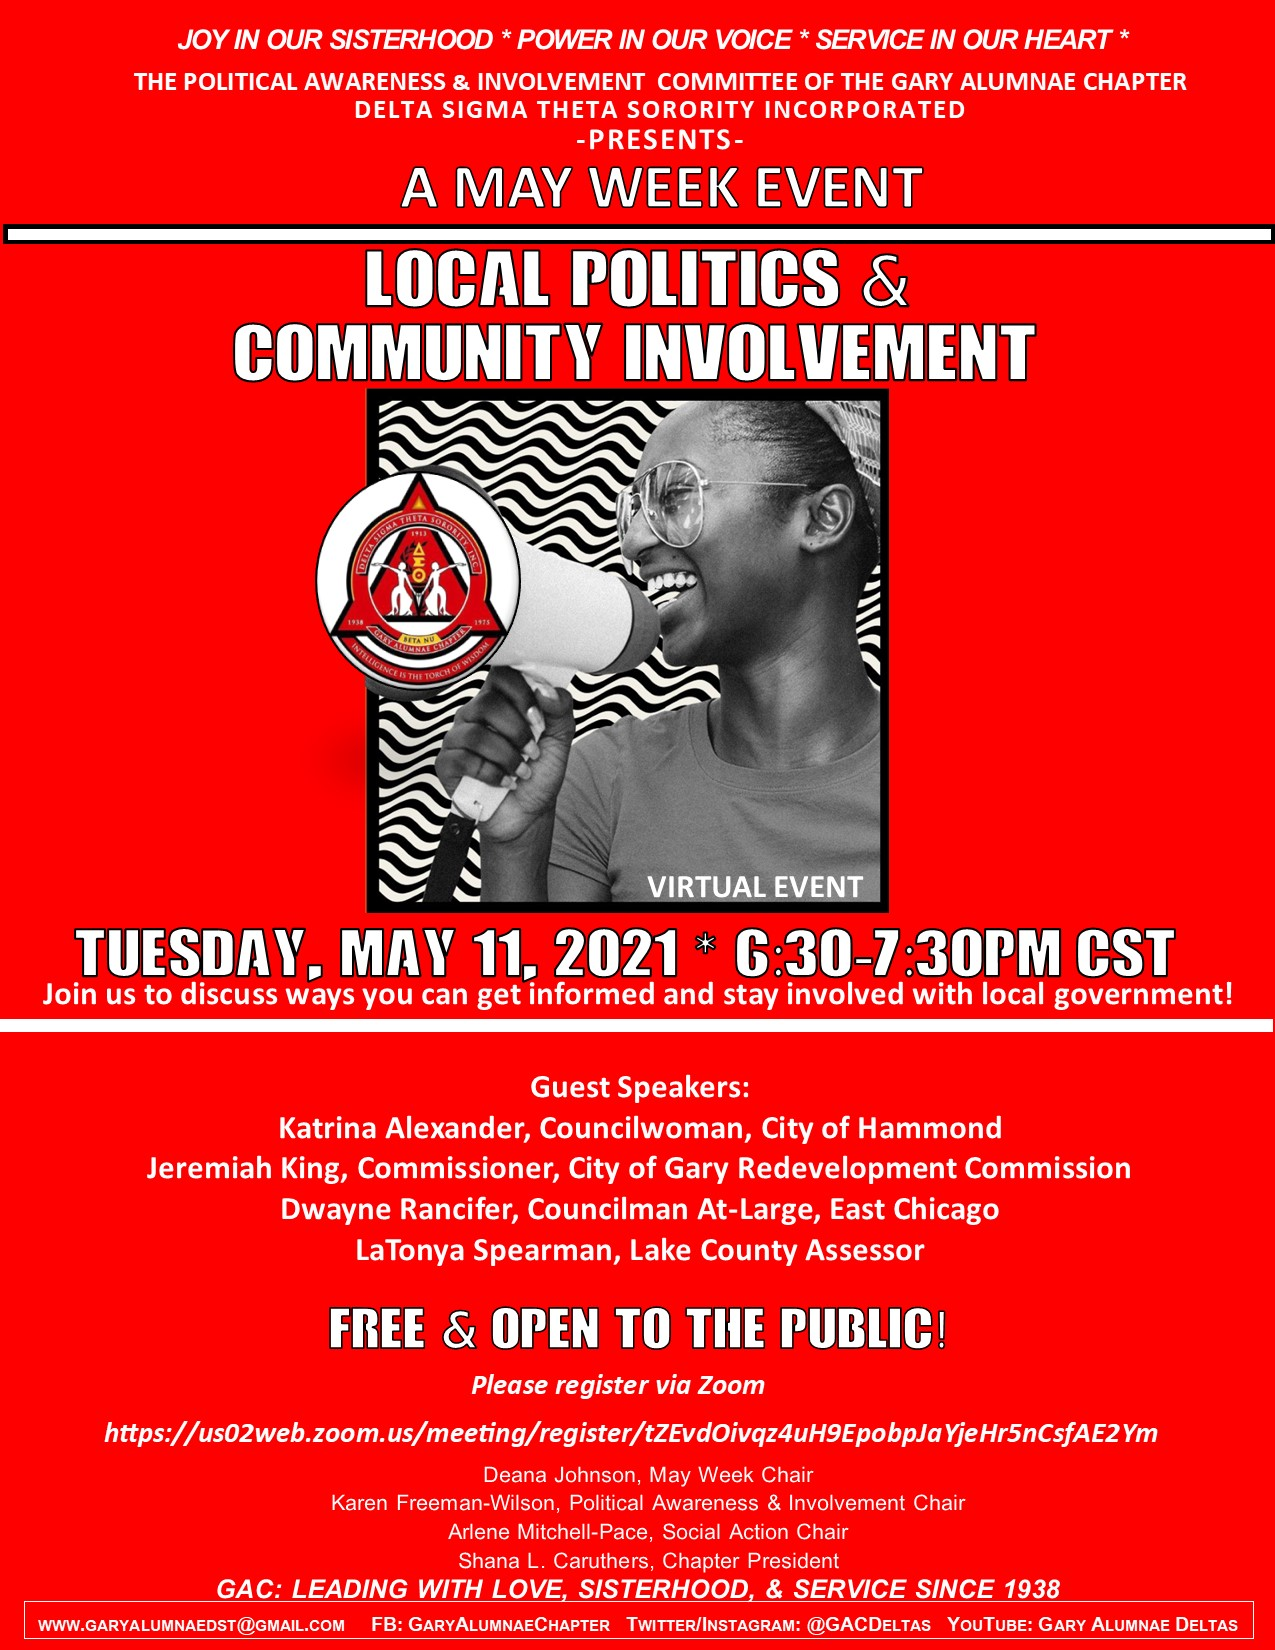 MAY WEEK- LOCAL POLITICS & COMMUNITY INVOLVEMENT (TUESDAY) CLICK THE FLYER